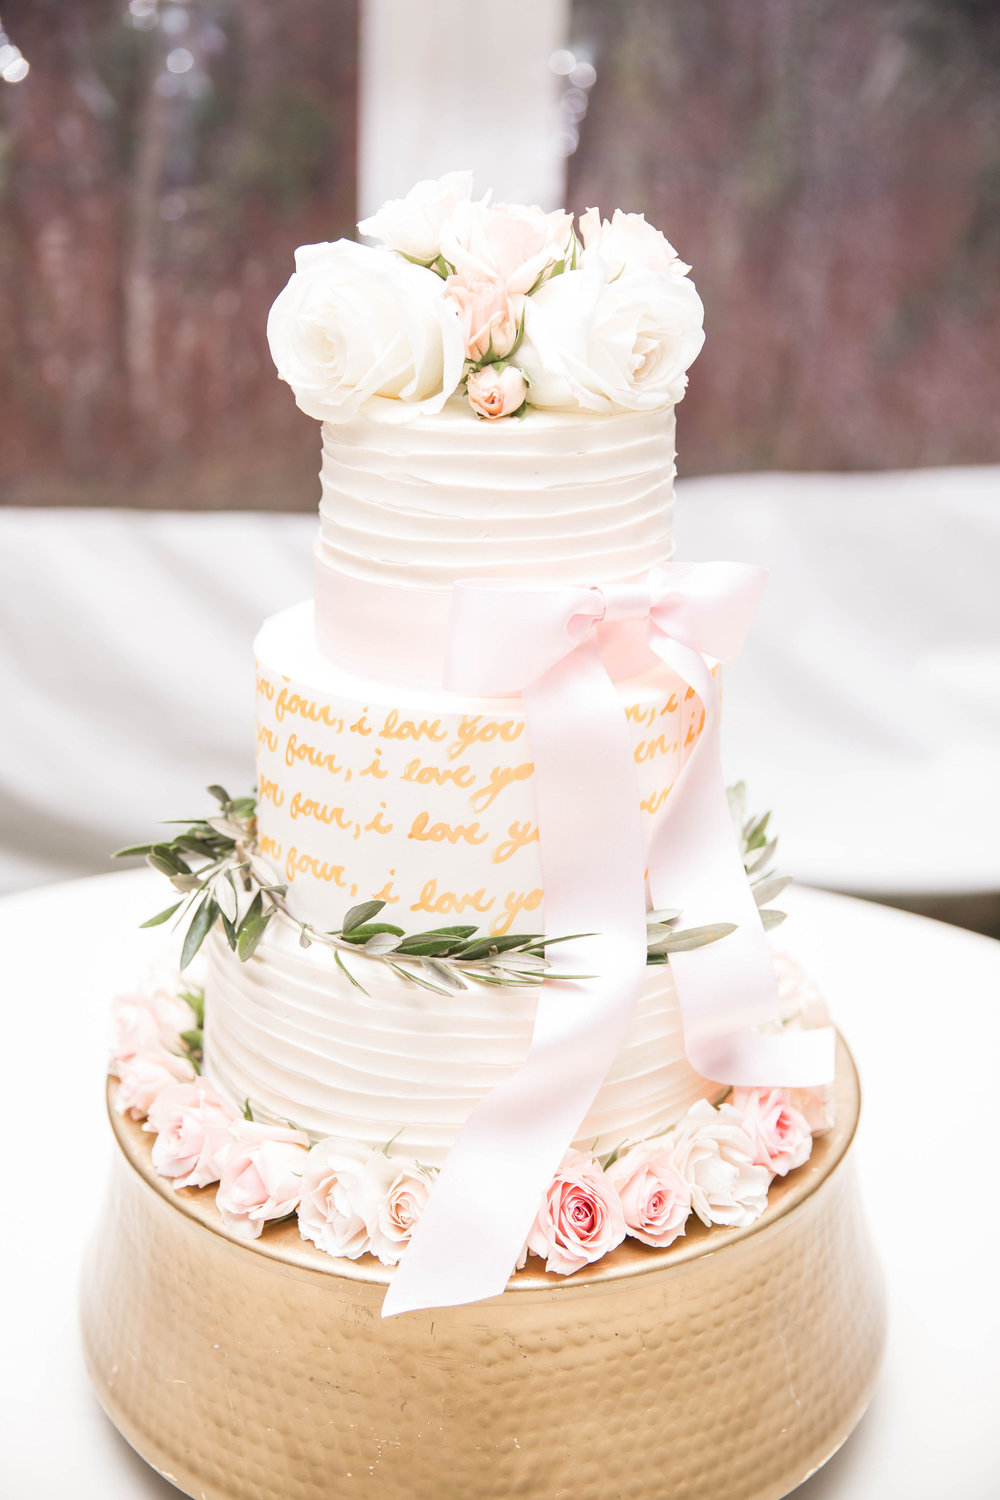 Two layers were vanilla cake with peanut butter mousse & white chocolate ganache and the other layer was vanilla cake with whipped strawberry buttercream!